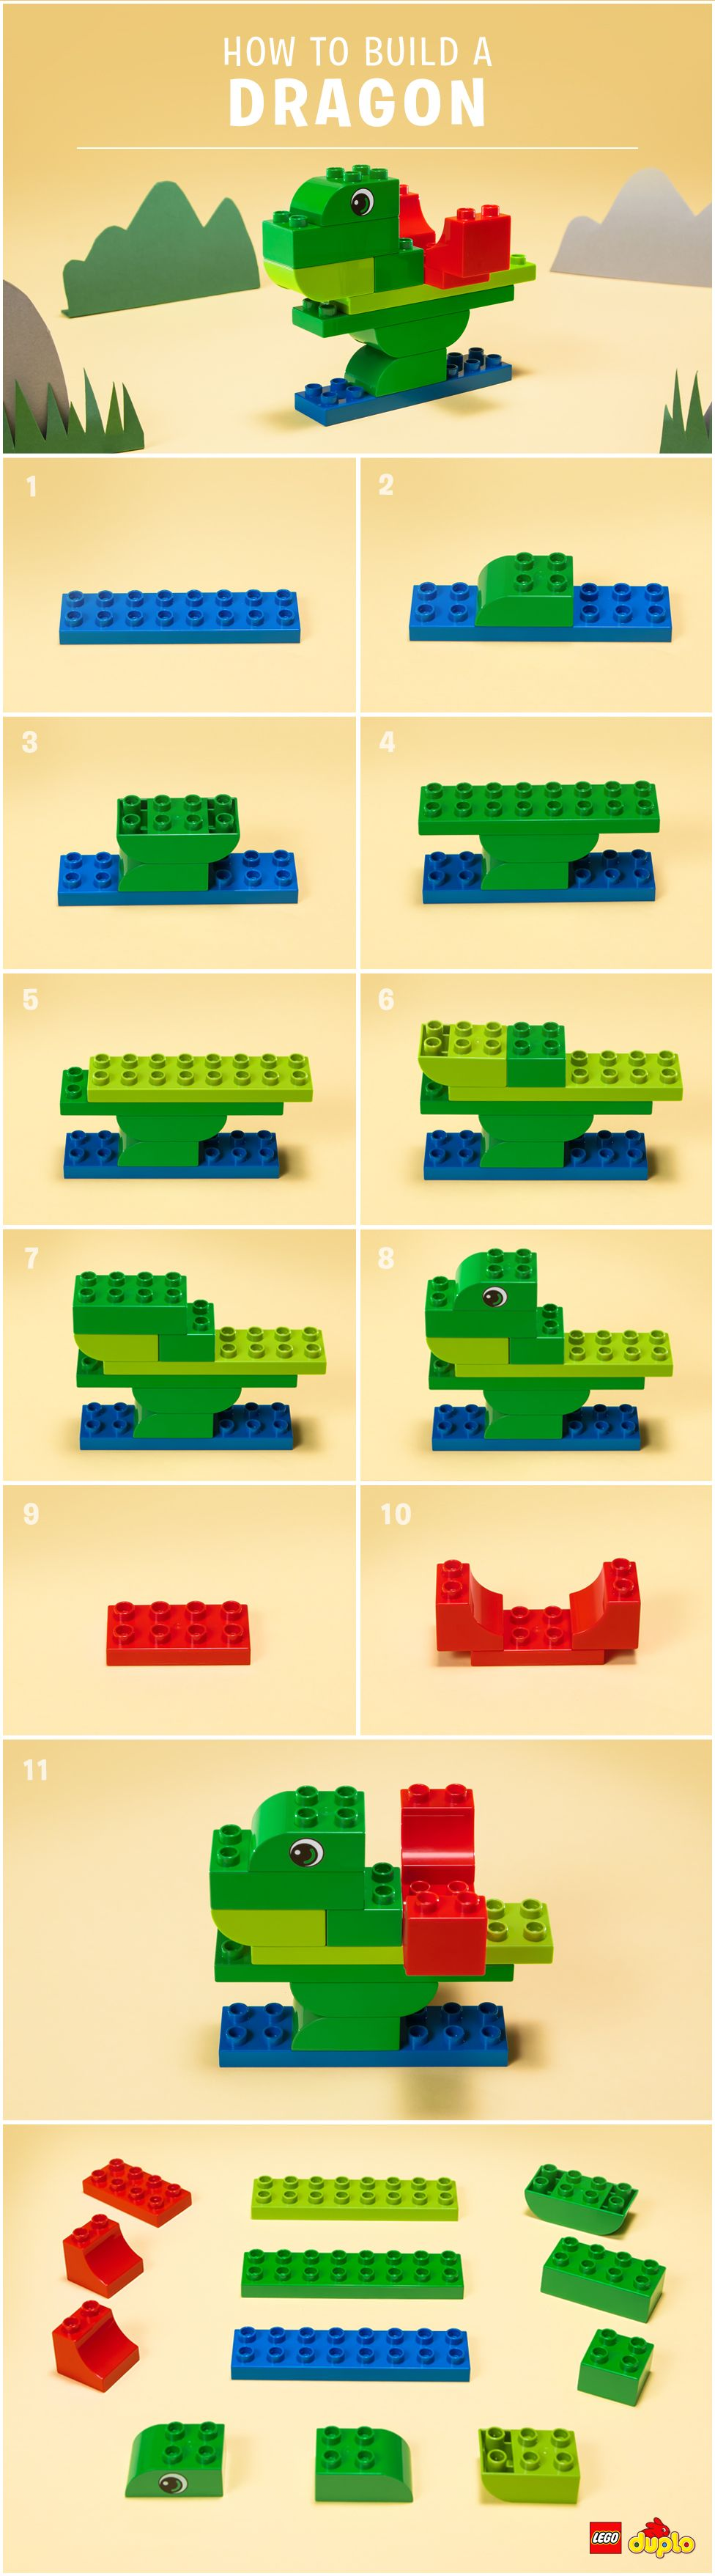 6 Reasons Lego Duplo Makes The Perfect Gift Articles Family